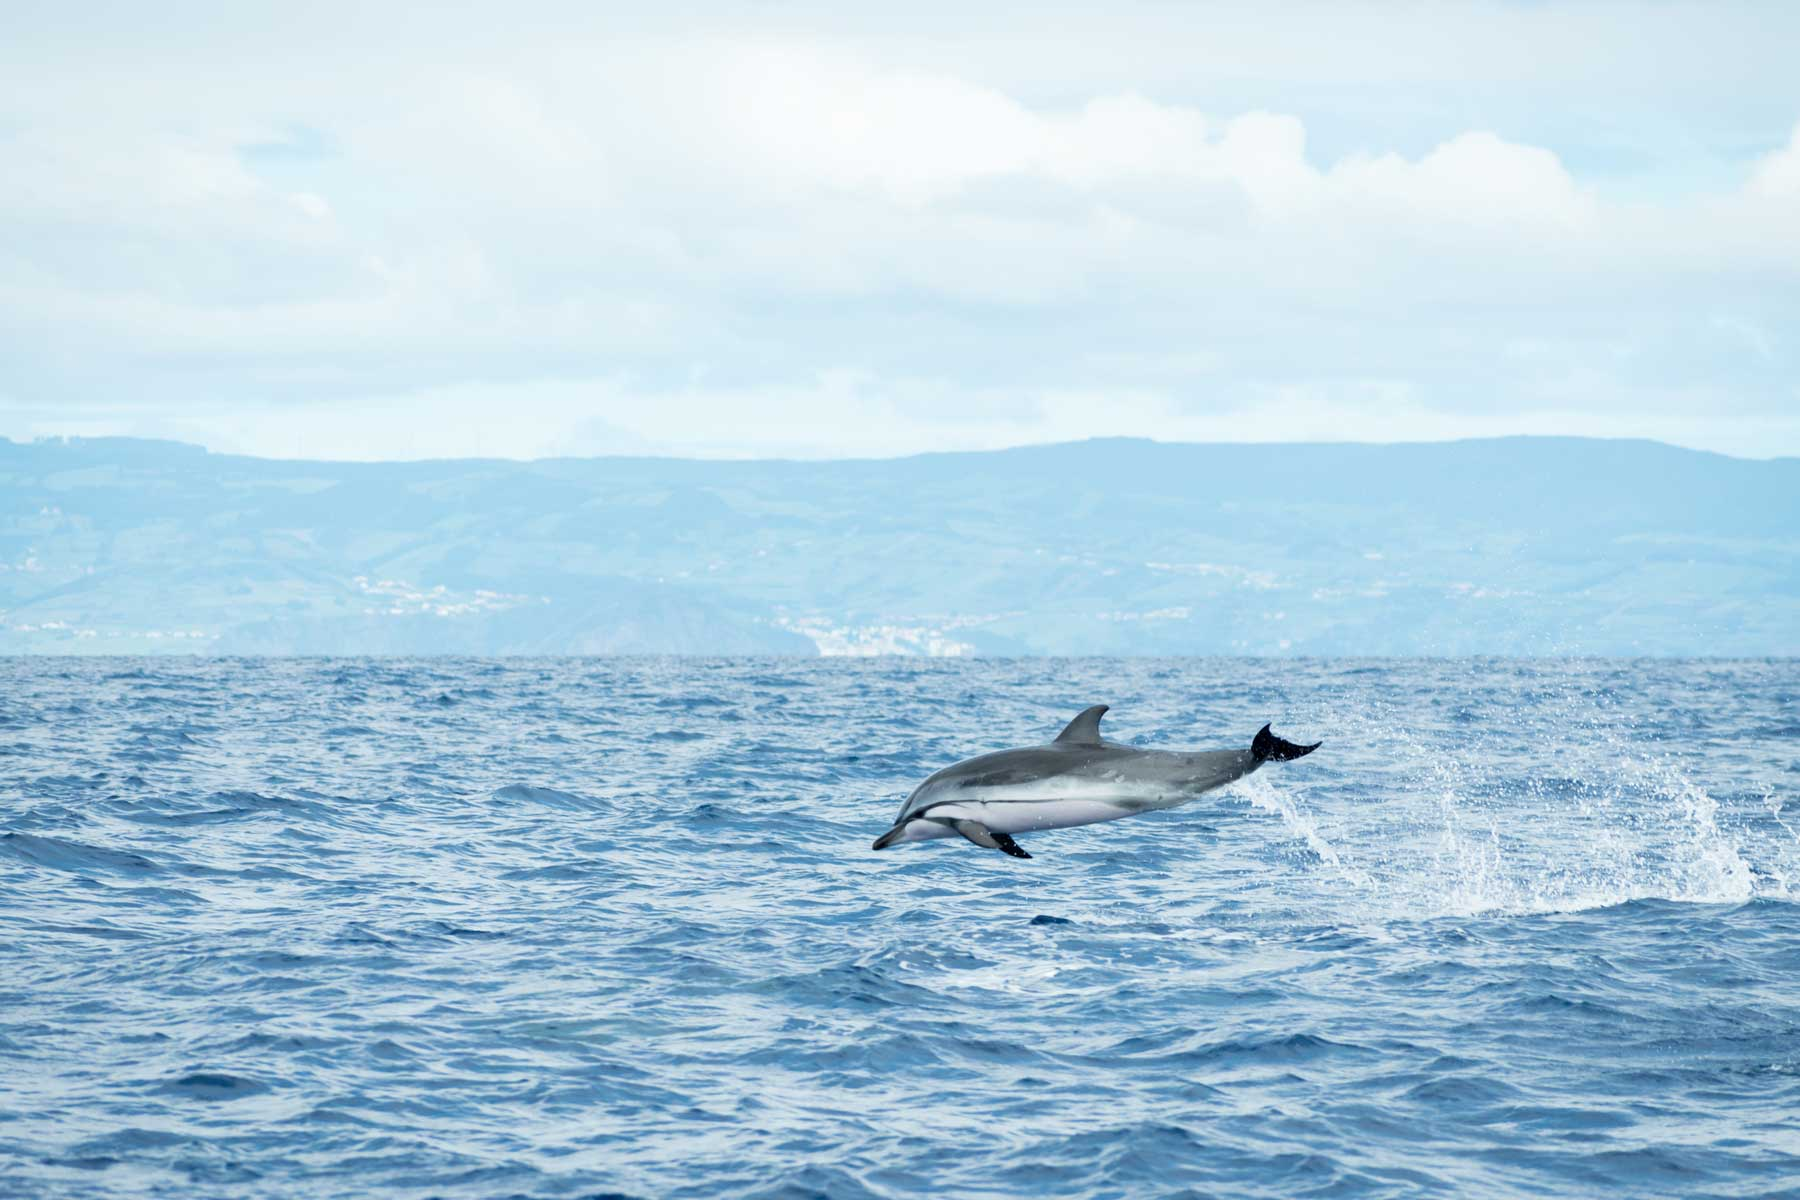 A Striped Dolphin (Stenella coeruleoalba) leaps out of the water in the Atlantic Ocean off the coast of Pico Island in the Azores archipelago